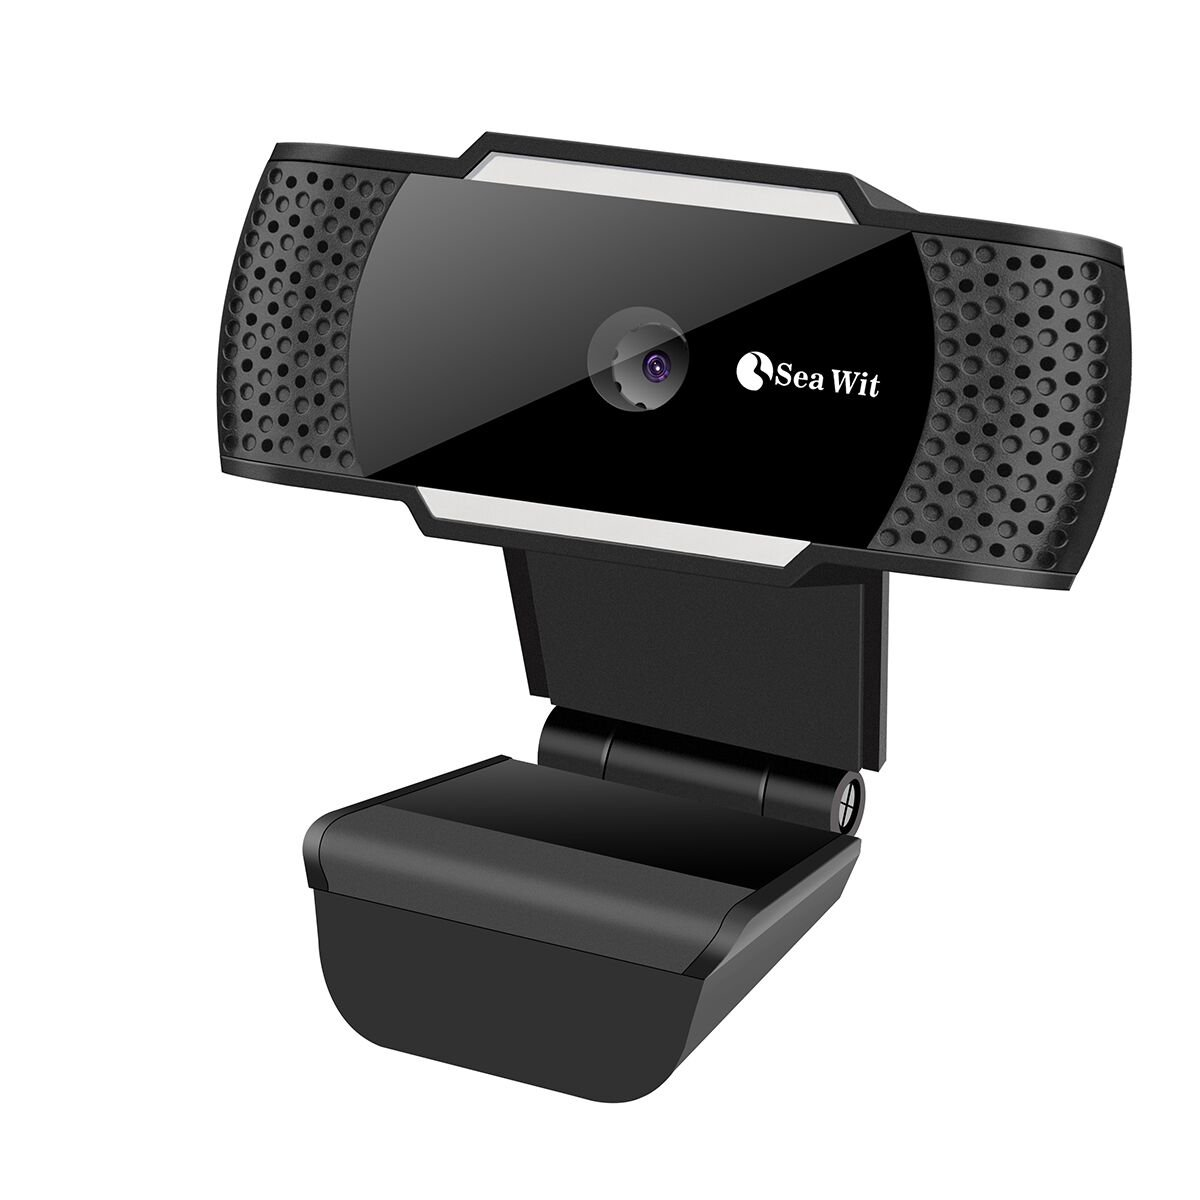 Sea Wit Webcam, USB Webcam with Built-in Microphone for Video Calling - Black